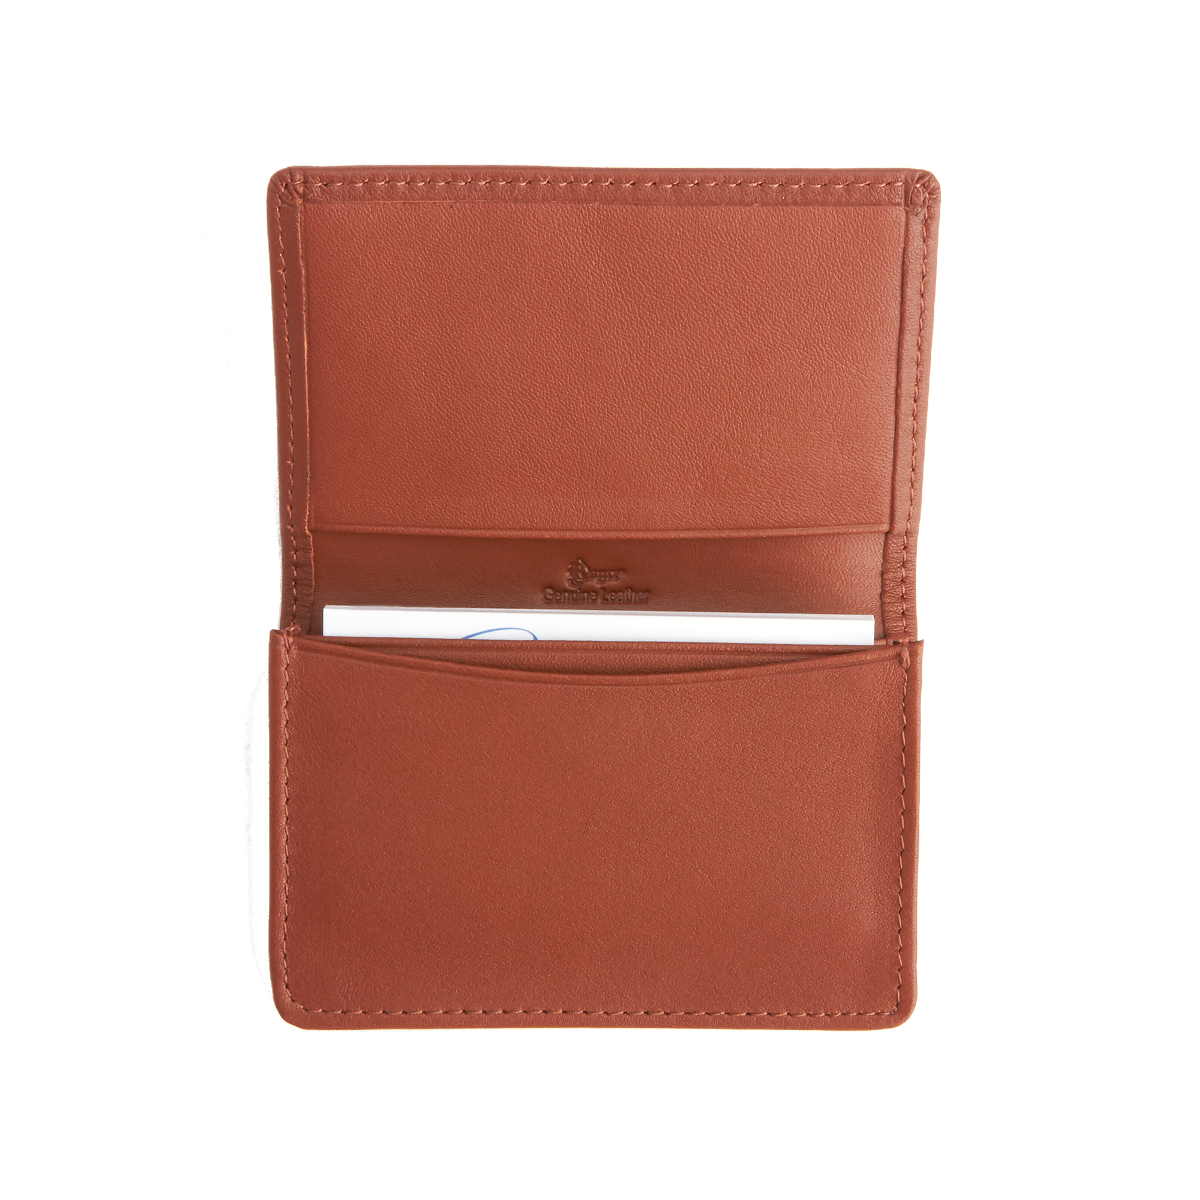 Executive Business Card Case Organizer | ROYCE New York